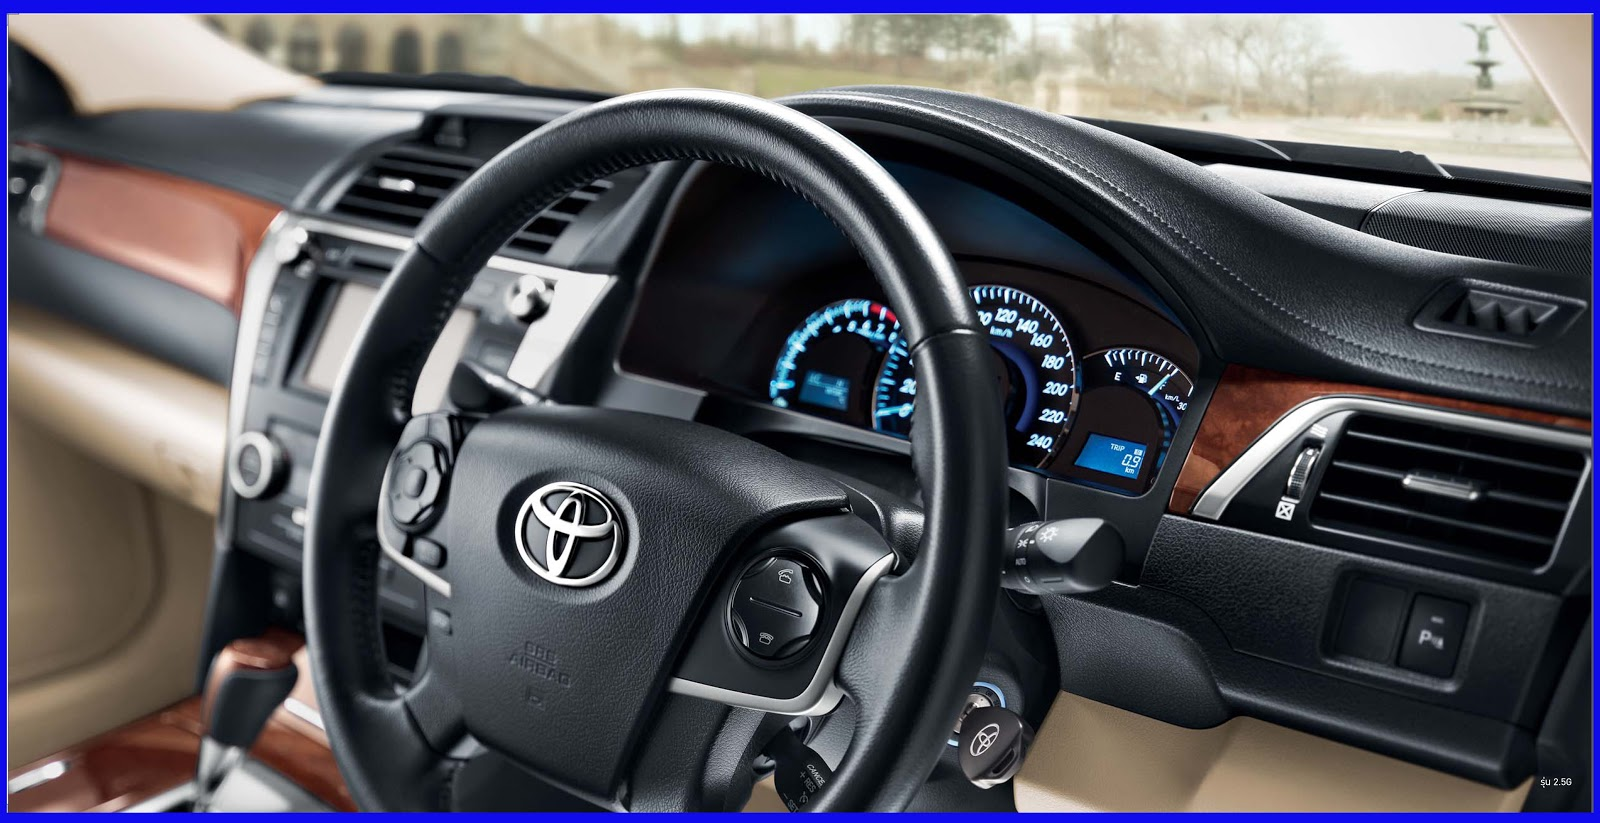 TOYOTA GENUINE ACCESSORIES   TOYOTA CAMRY GENUINE ACCESSORIES